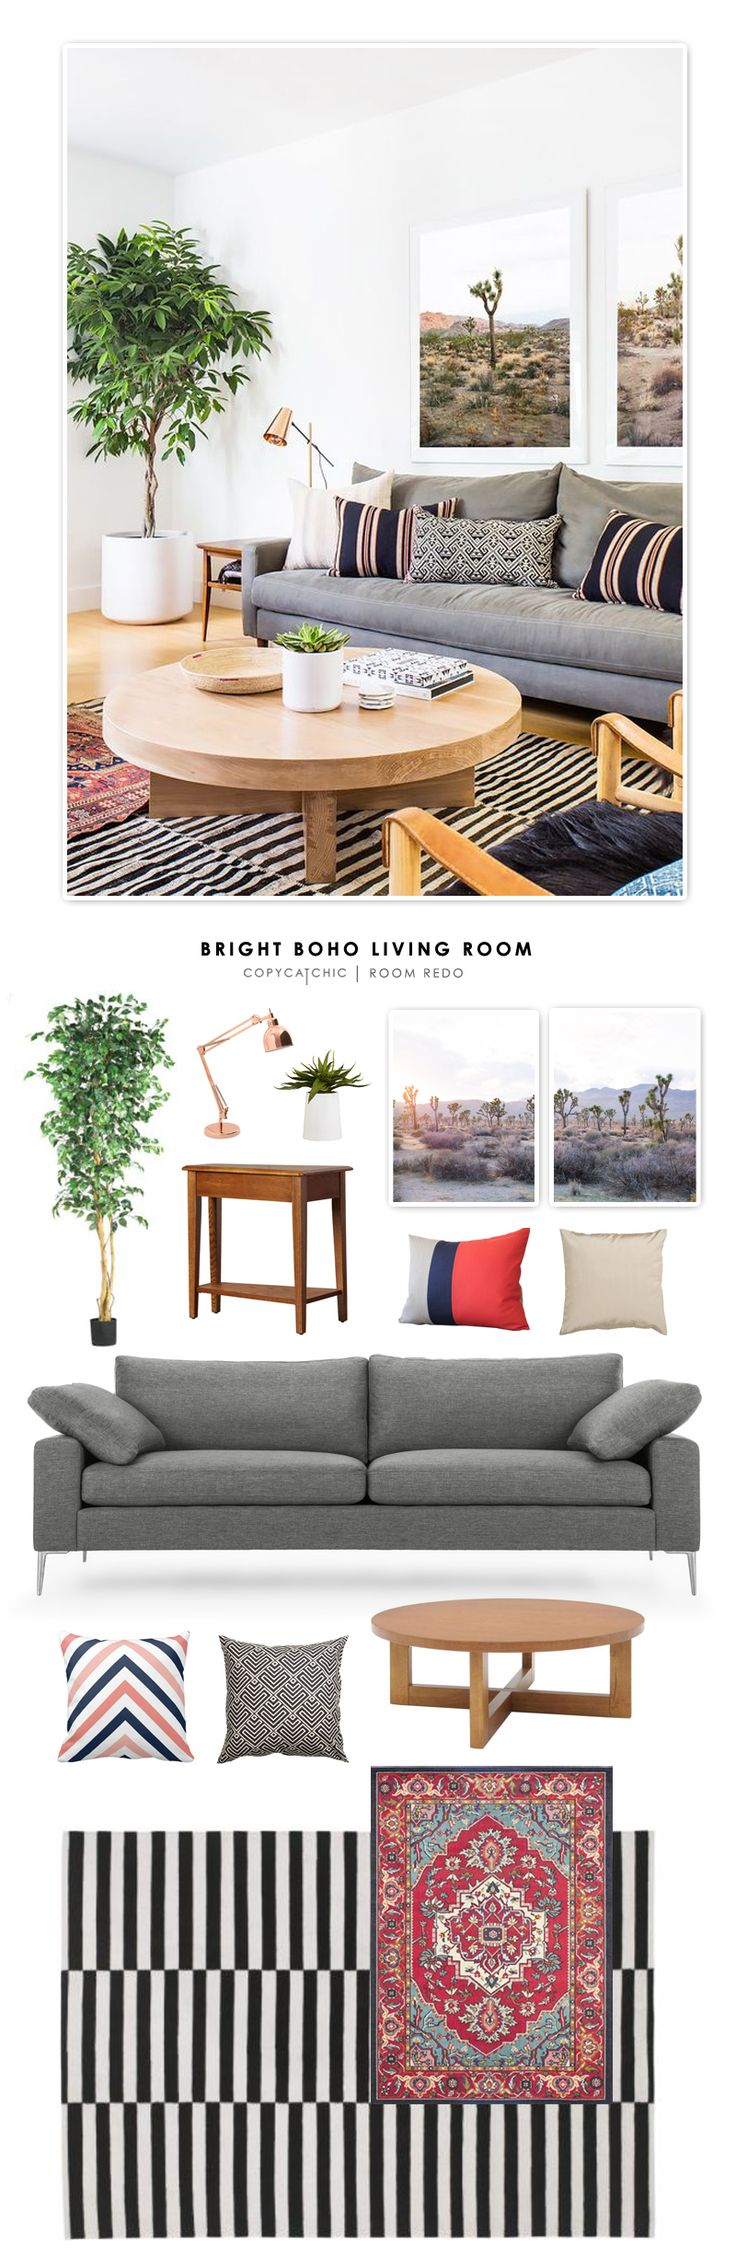 Copy Cat Chic Room Redo Bright Boho Living Room